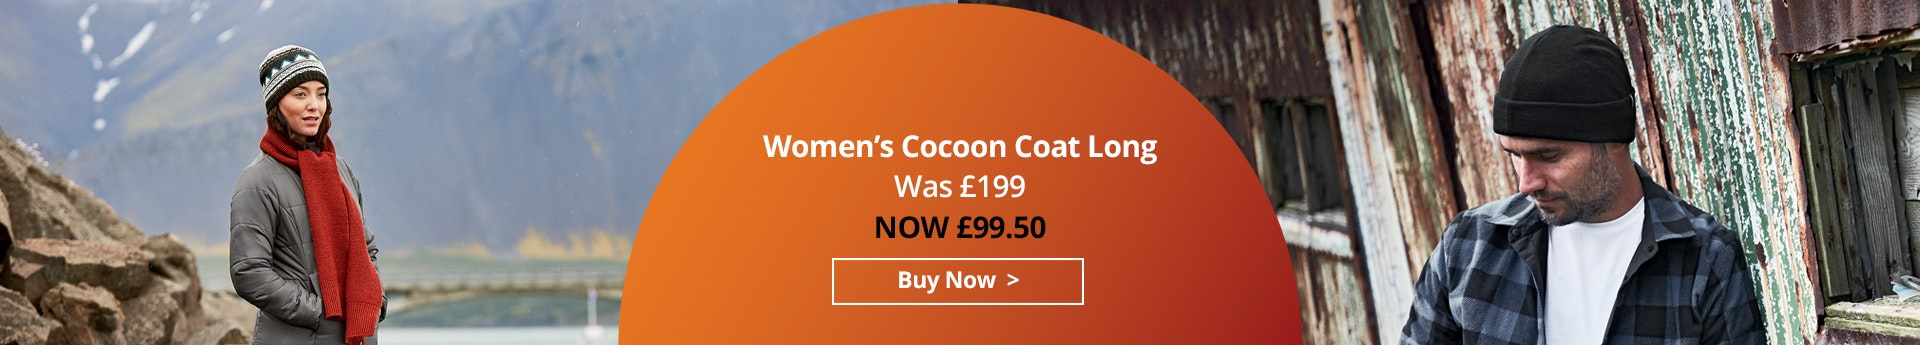 Shop Women's Cocoon Coat Long